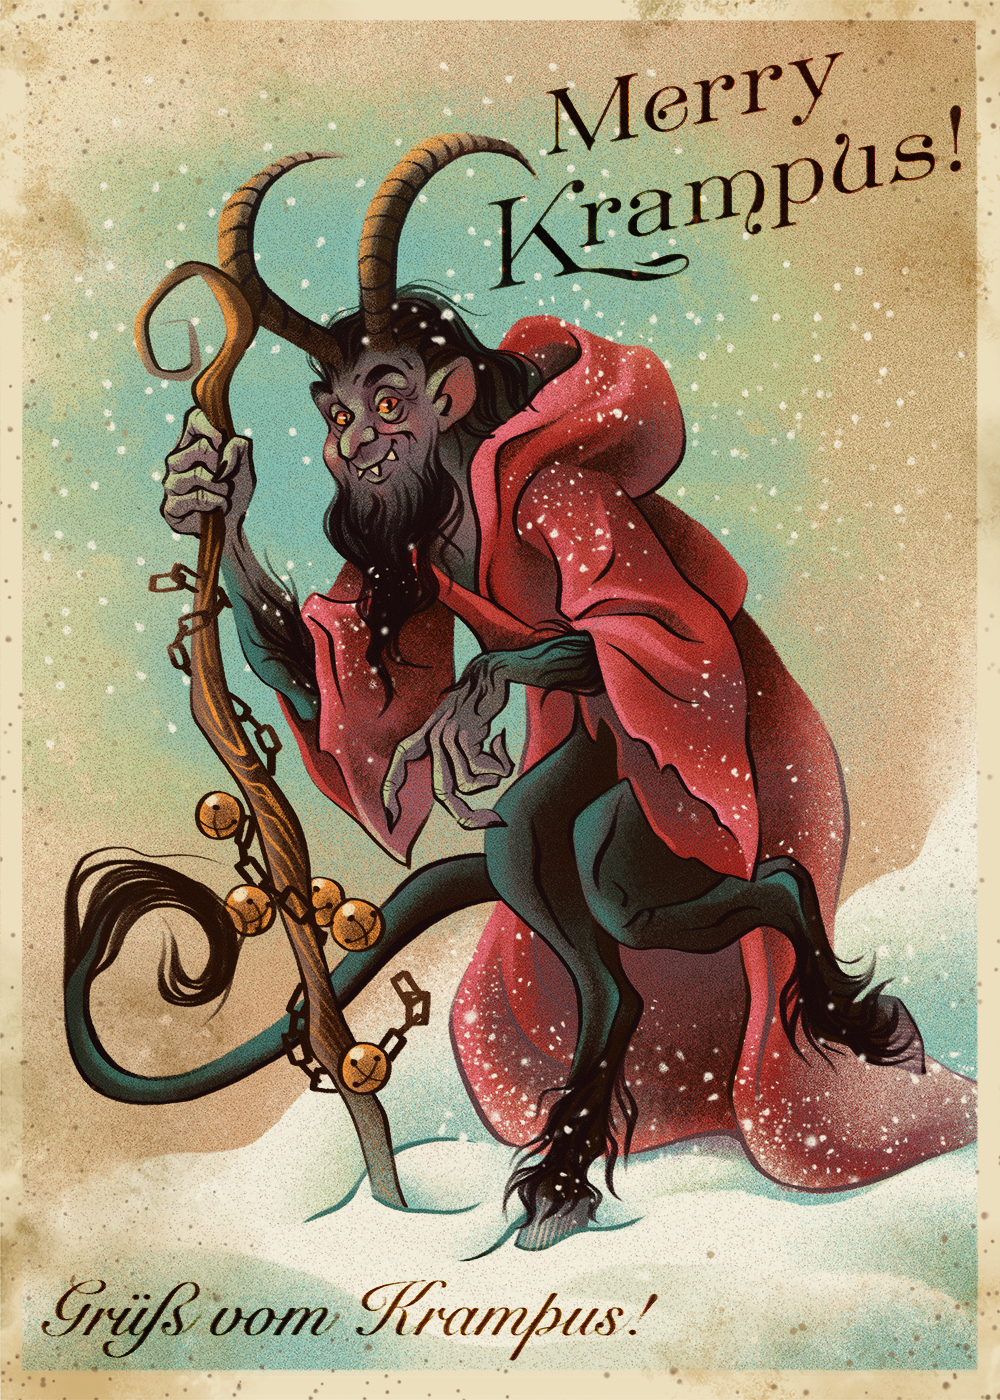 merry krampus kropped.jpg